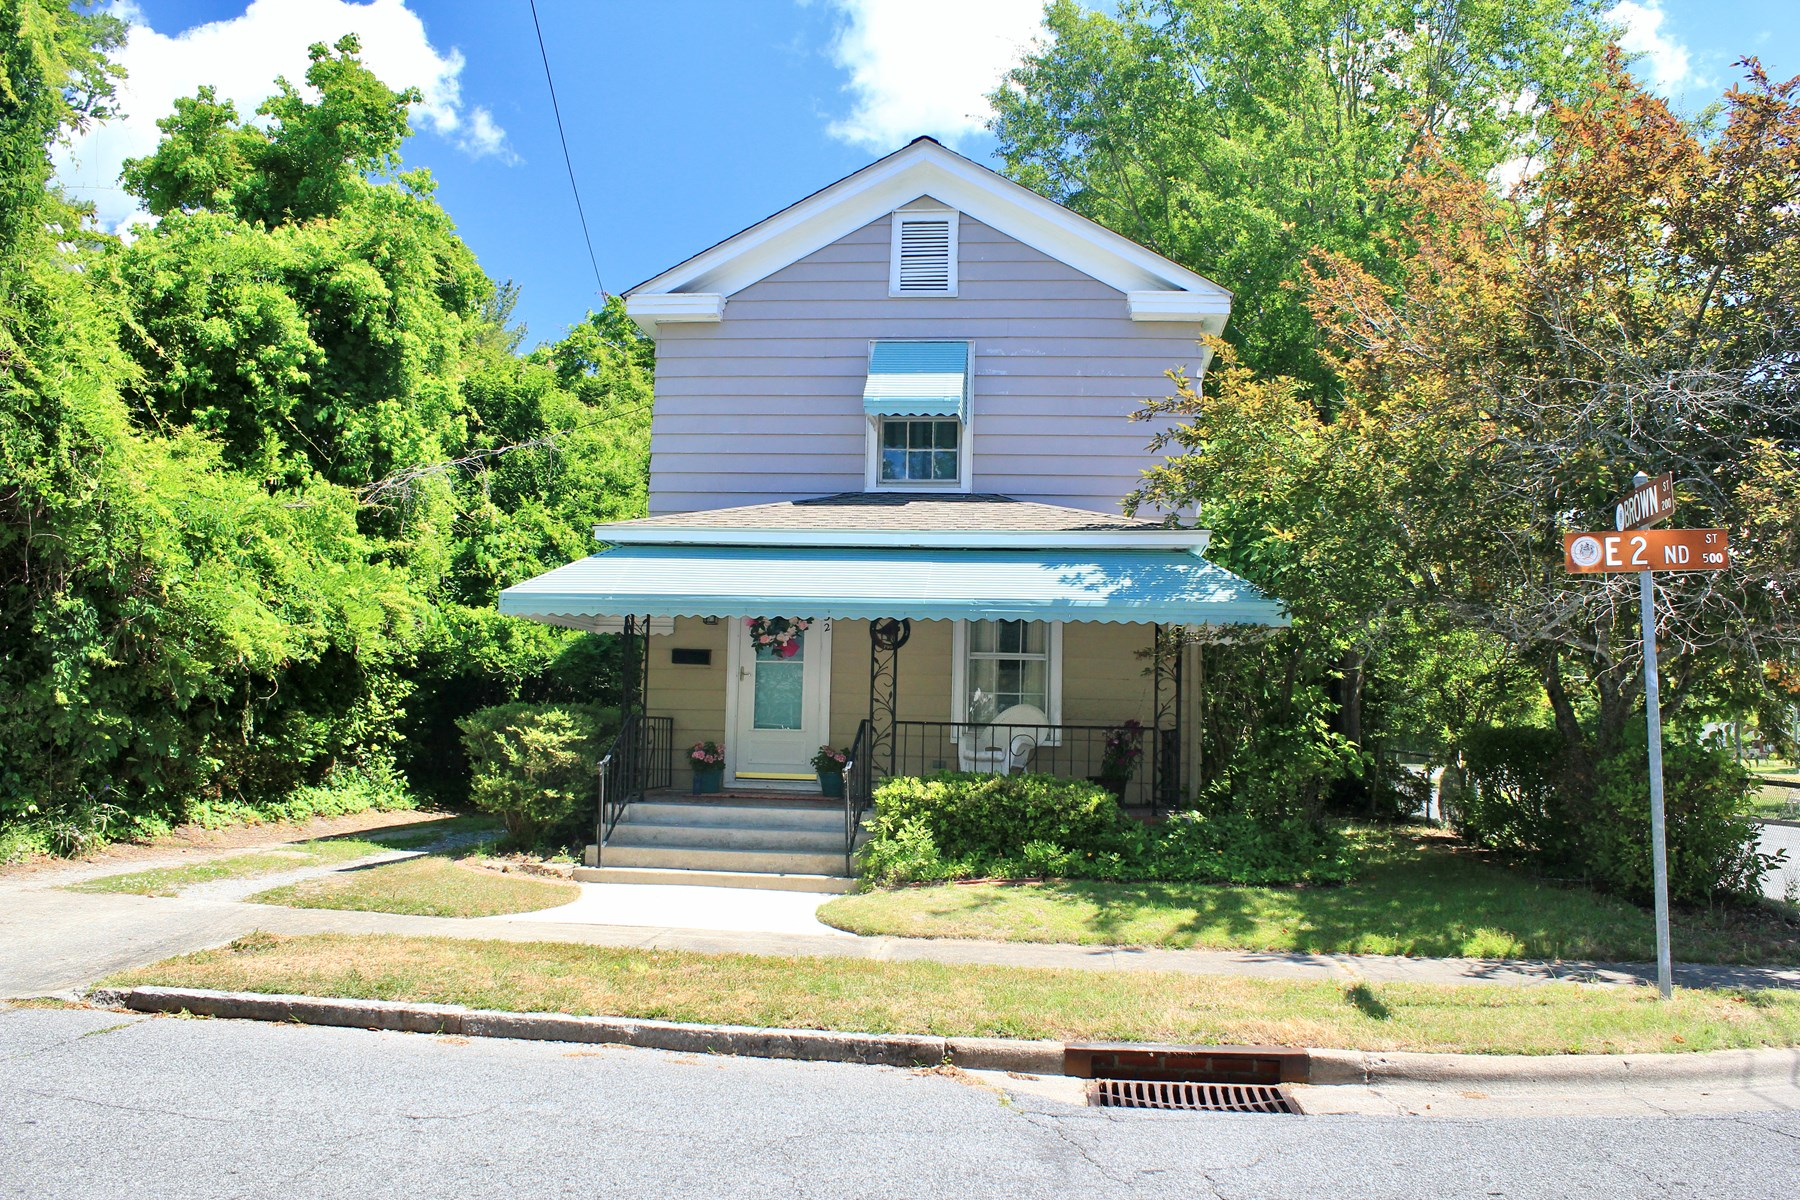 Adorable Home for Sale in Washington Historic District